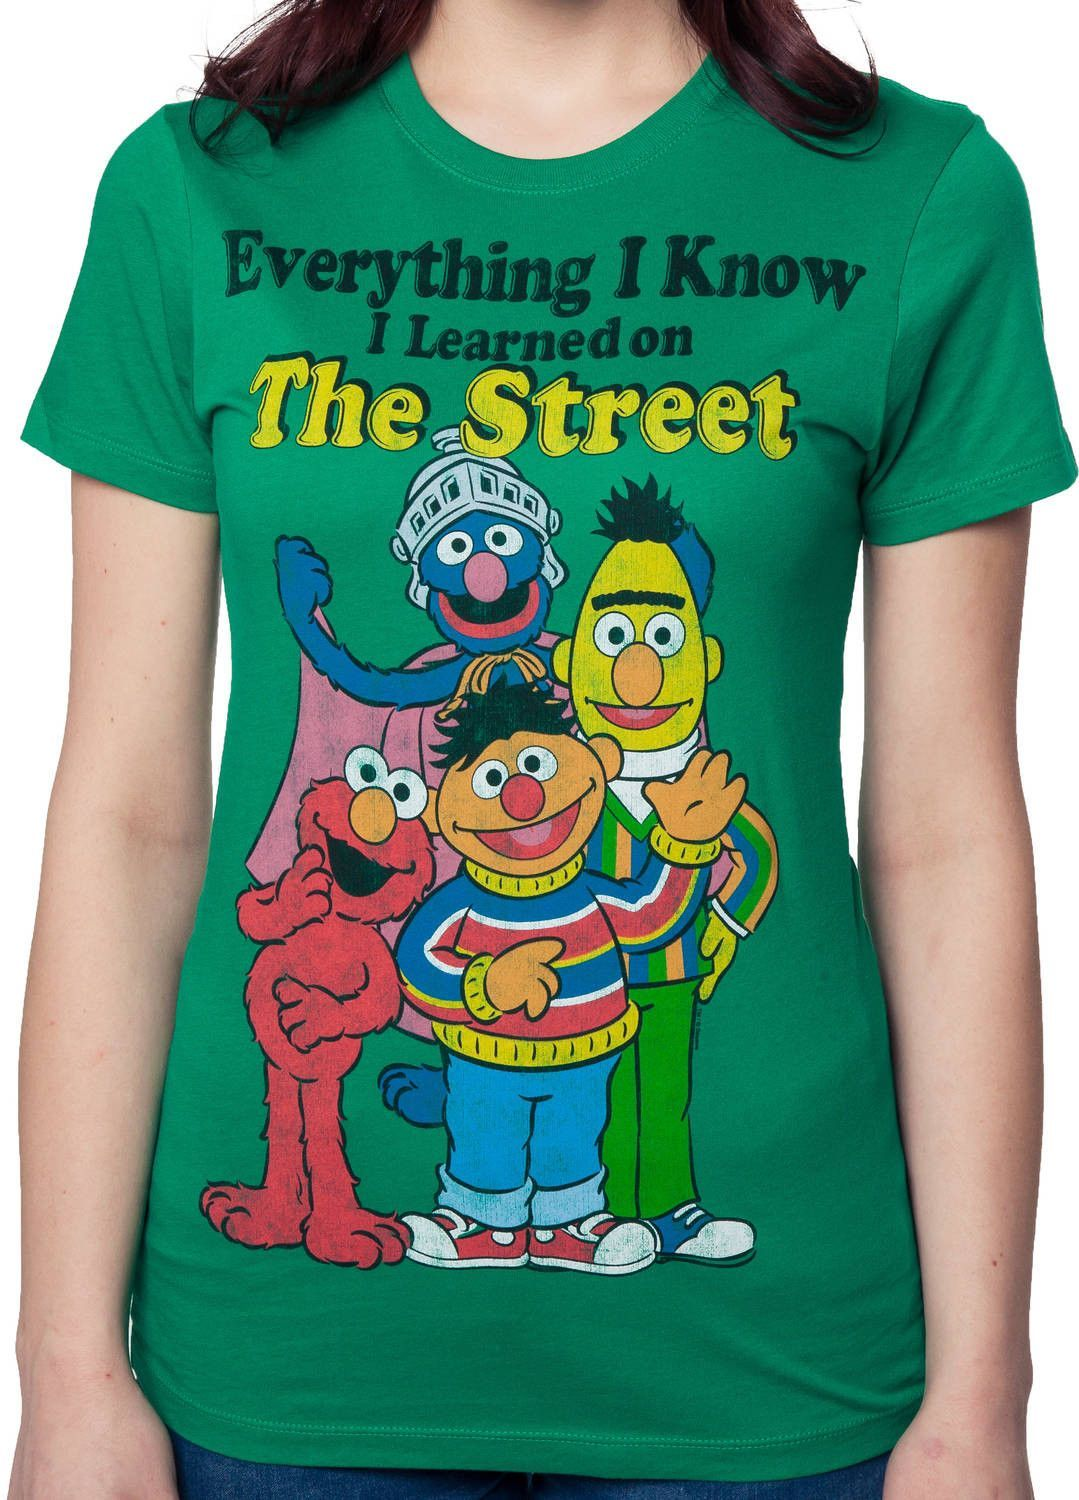 Sesame Street tshirt featuring Bert, Ernie, Elmo, and